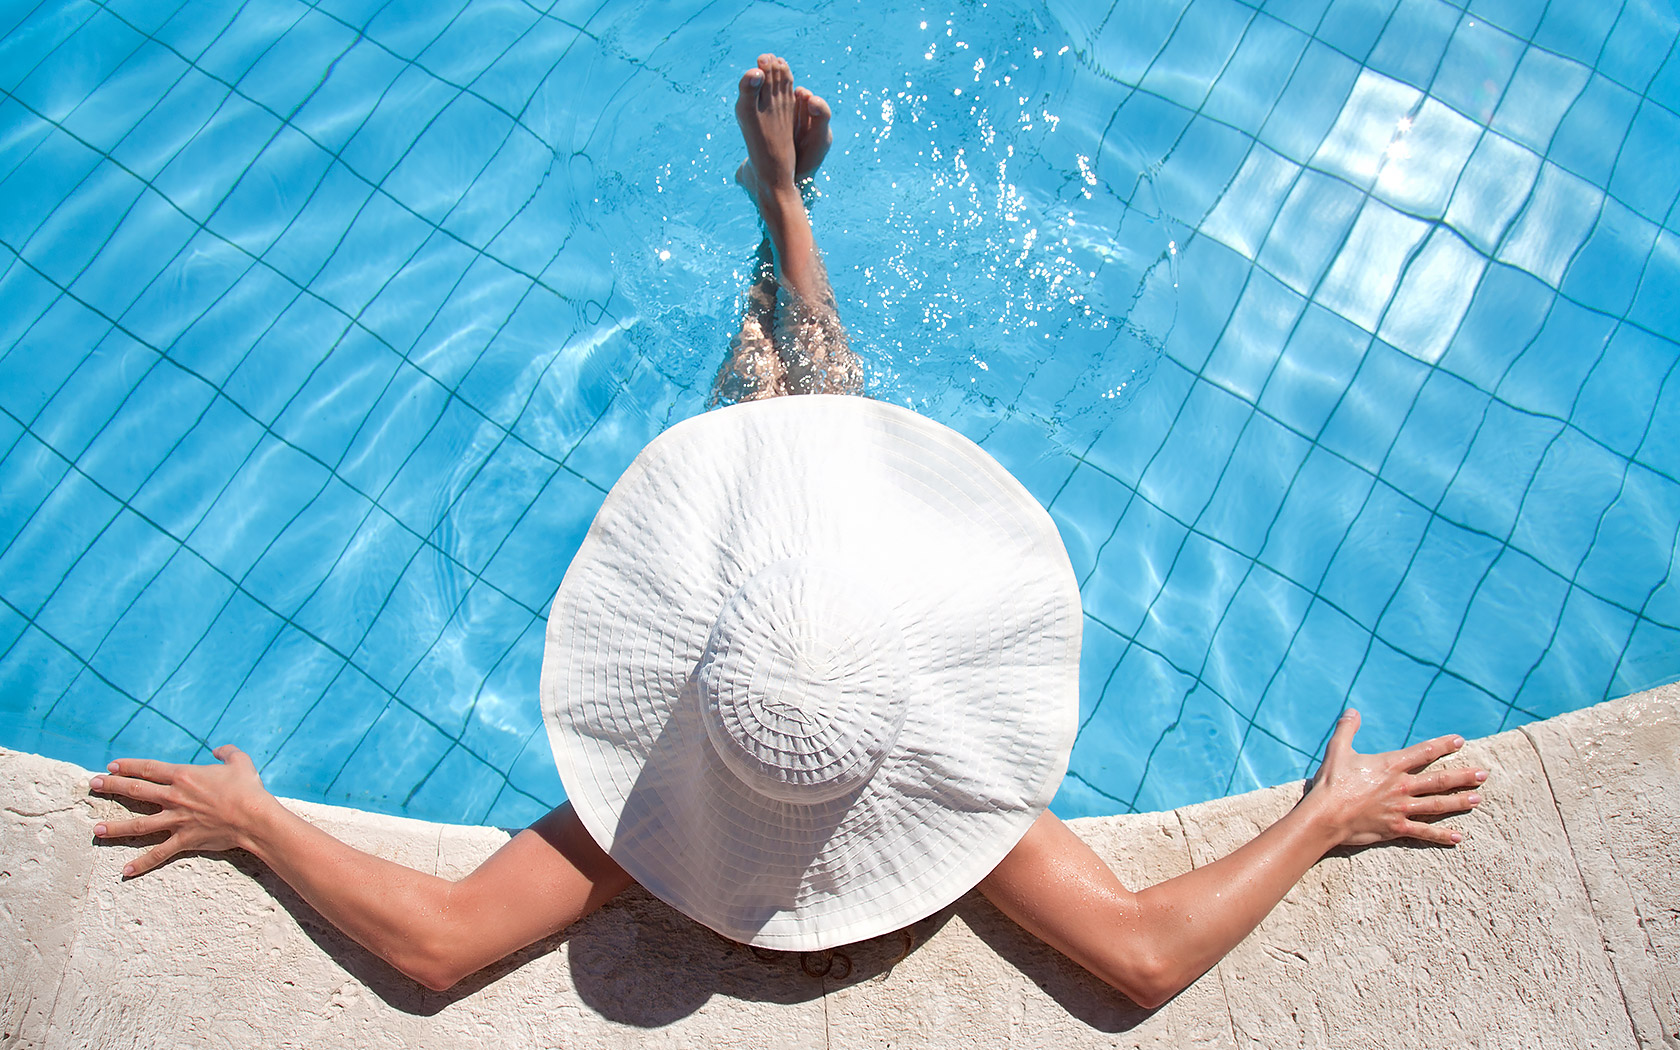 a woman in a white hat enjoying the pool